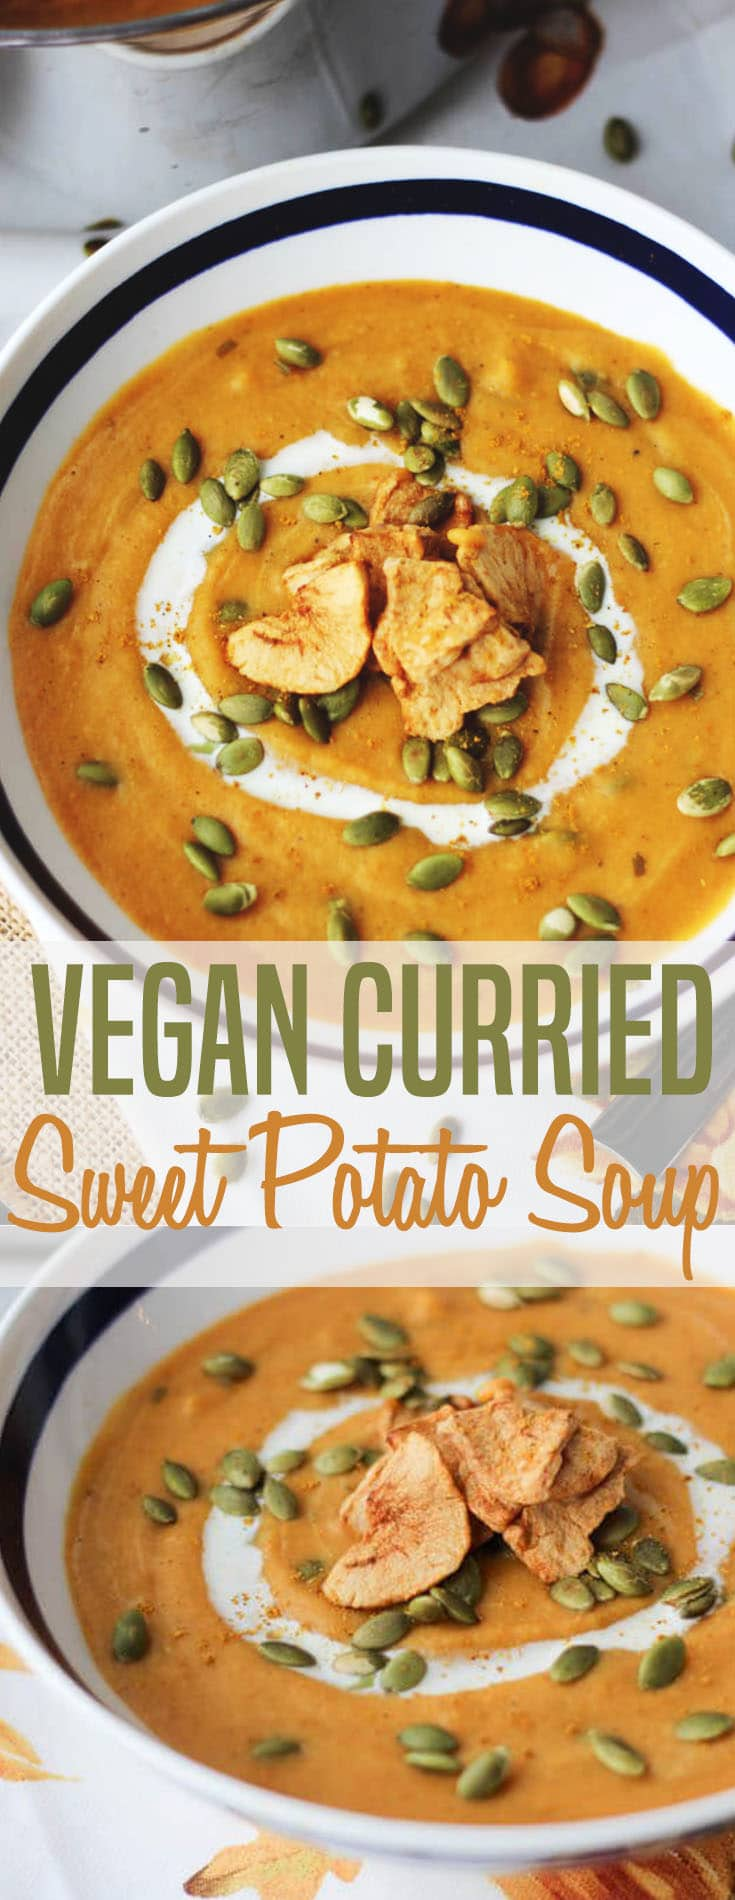 Try my Easy Vegan Healthy Curried Sweet Potato Soup for dinner or lunch. #vegansoup #sweetpotato #easy #creamy #vegetarian #easyrecipes